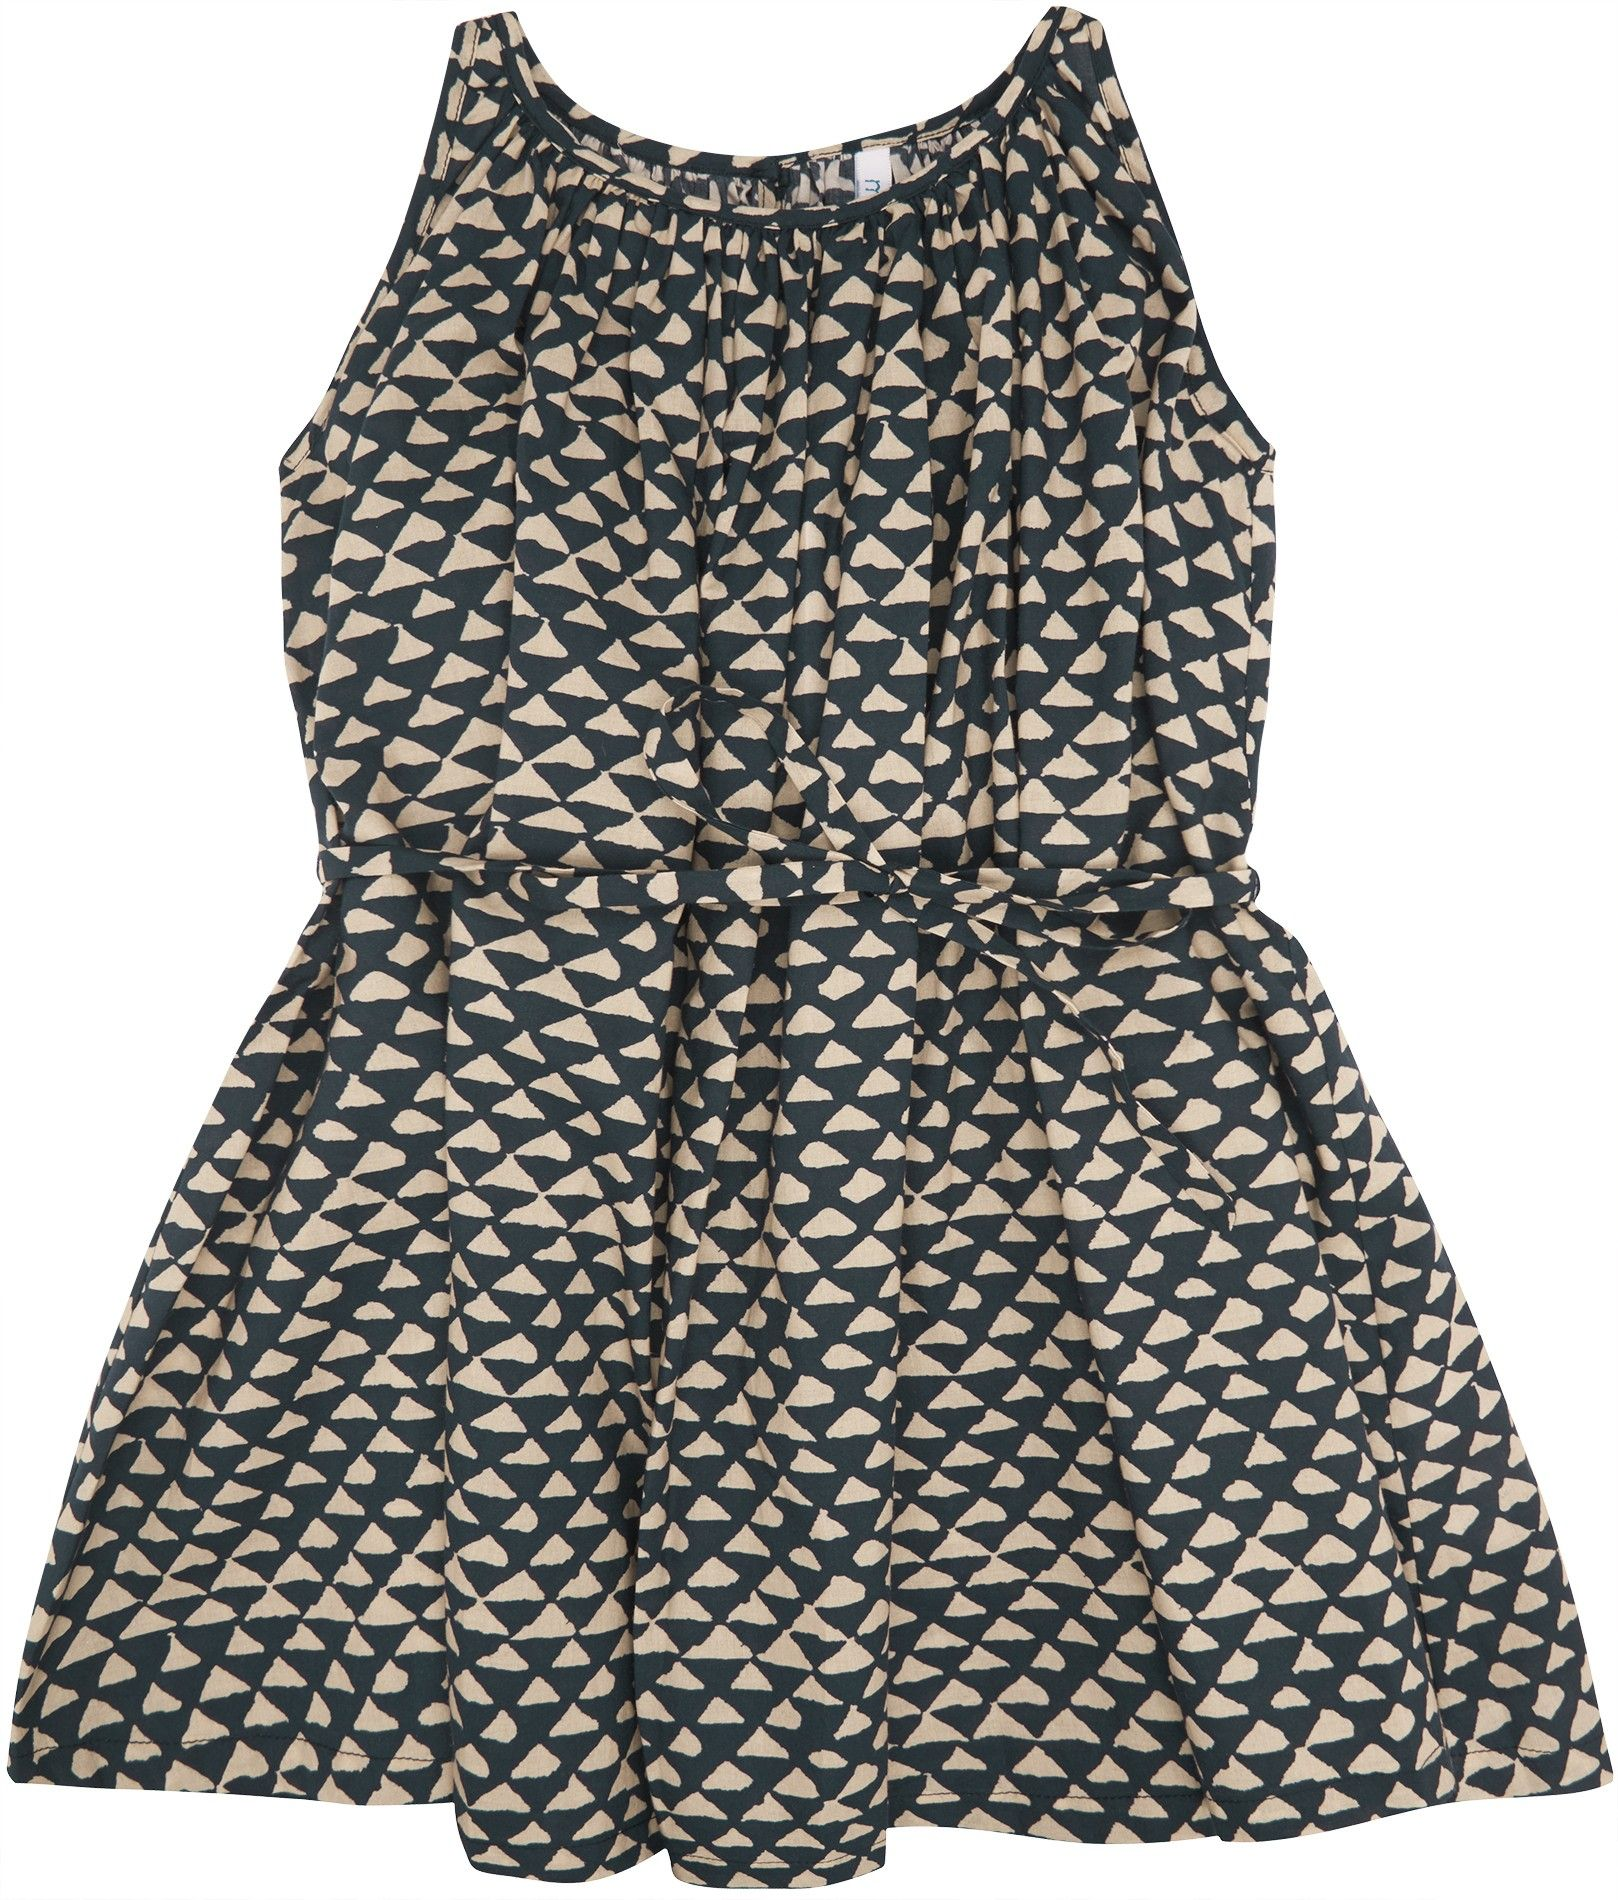 Shop The Miller Girls Bondi Dress In Blue At Elias & Grace. Browse The Cutest Girls Clothes From Miller, Handpicked By Elias & Grace